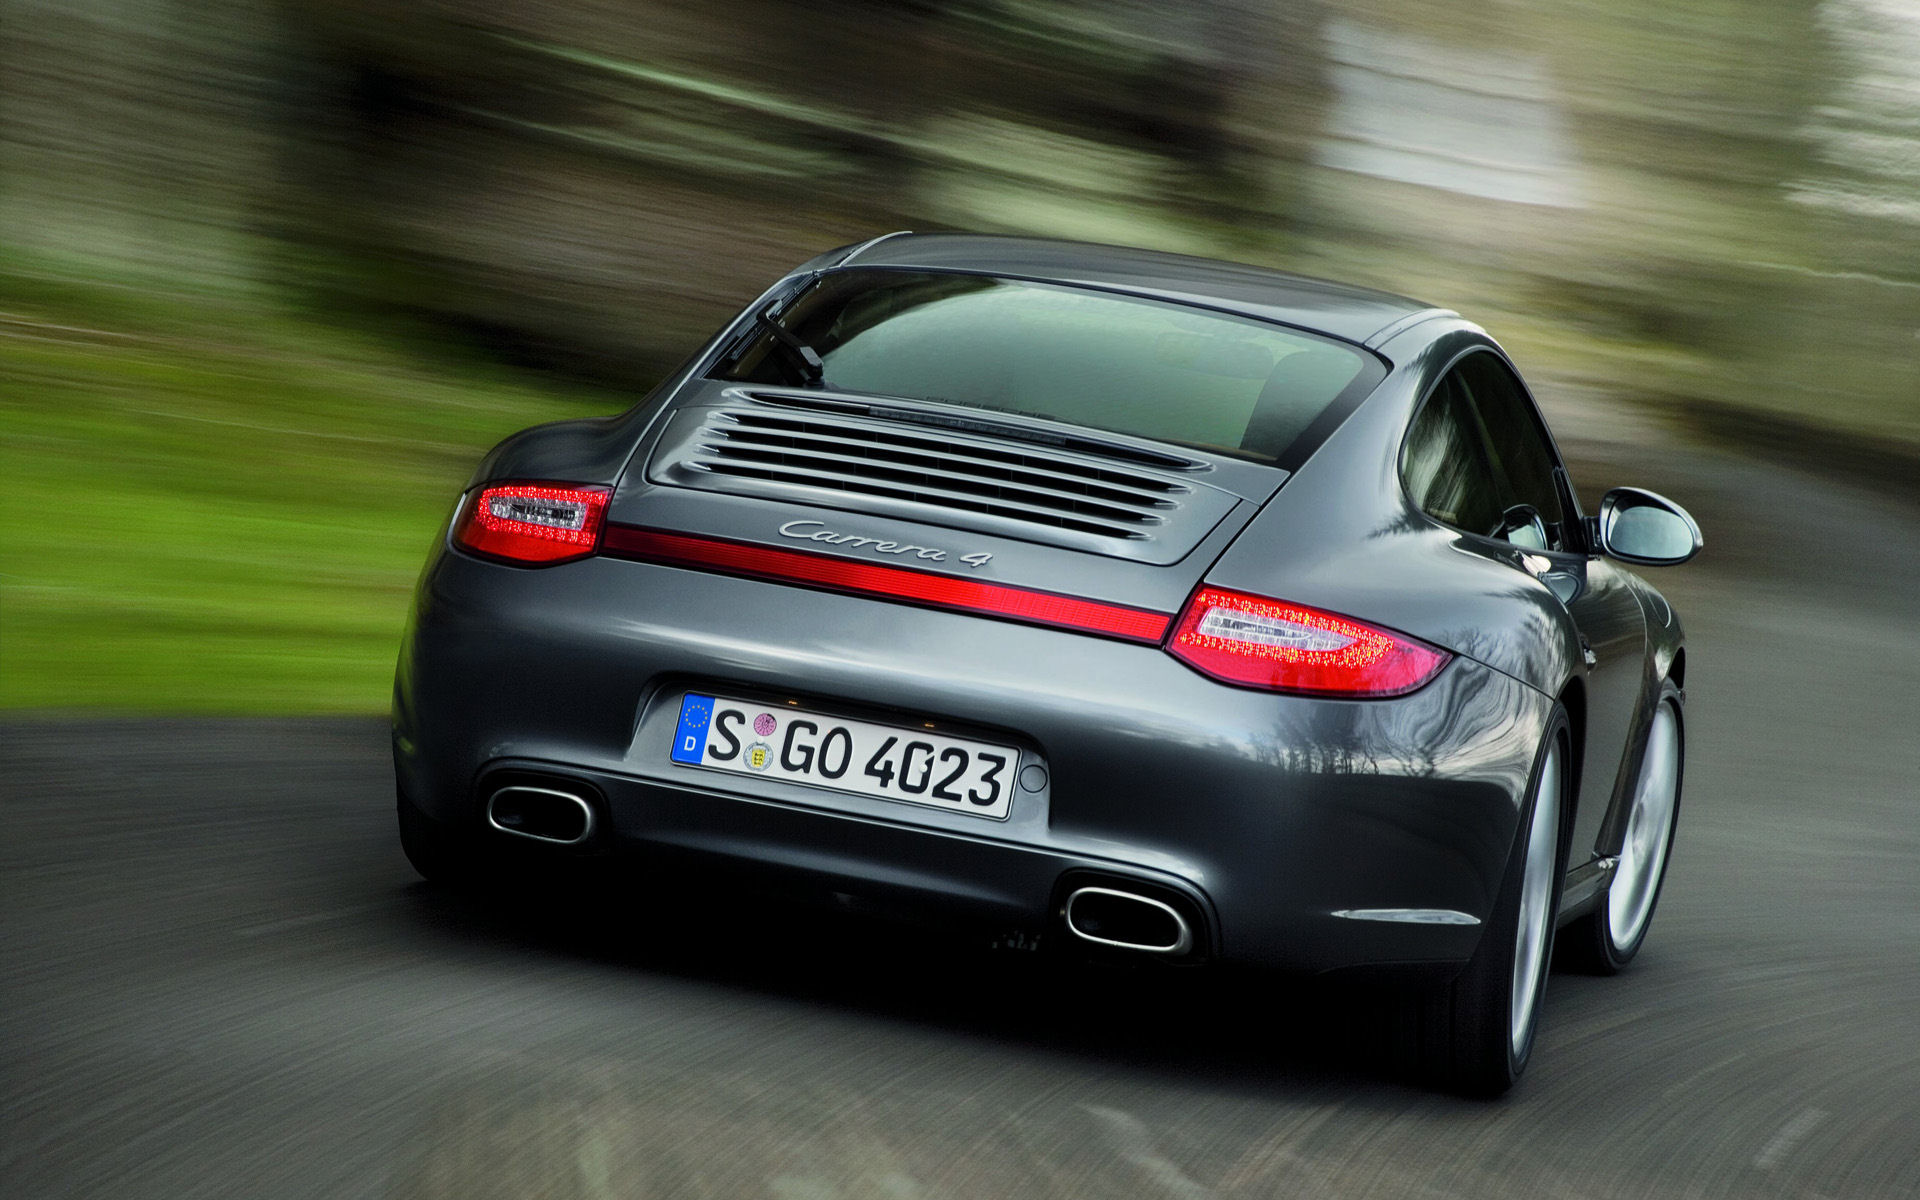 porsche 911 996 997 carrera s 4s gt3 turbo free widescreen wallpaper desktop background. Black Bedroom Furniture Sets. Home Design Ideas